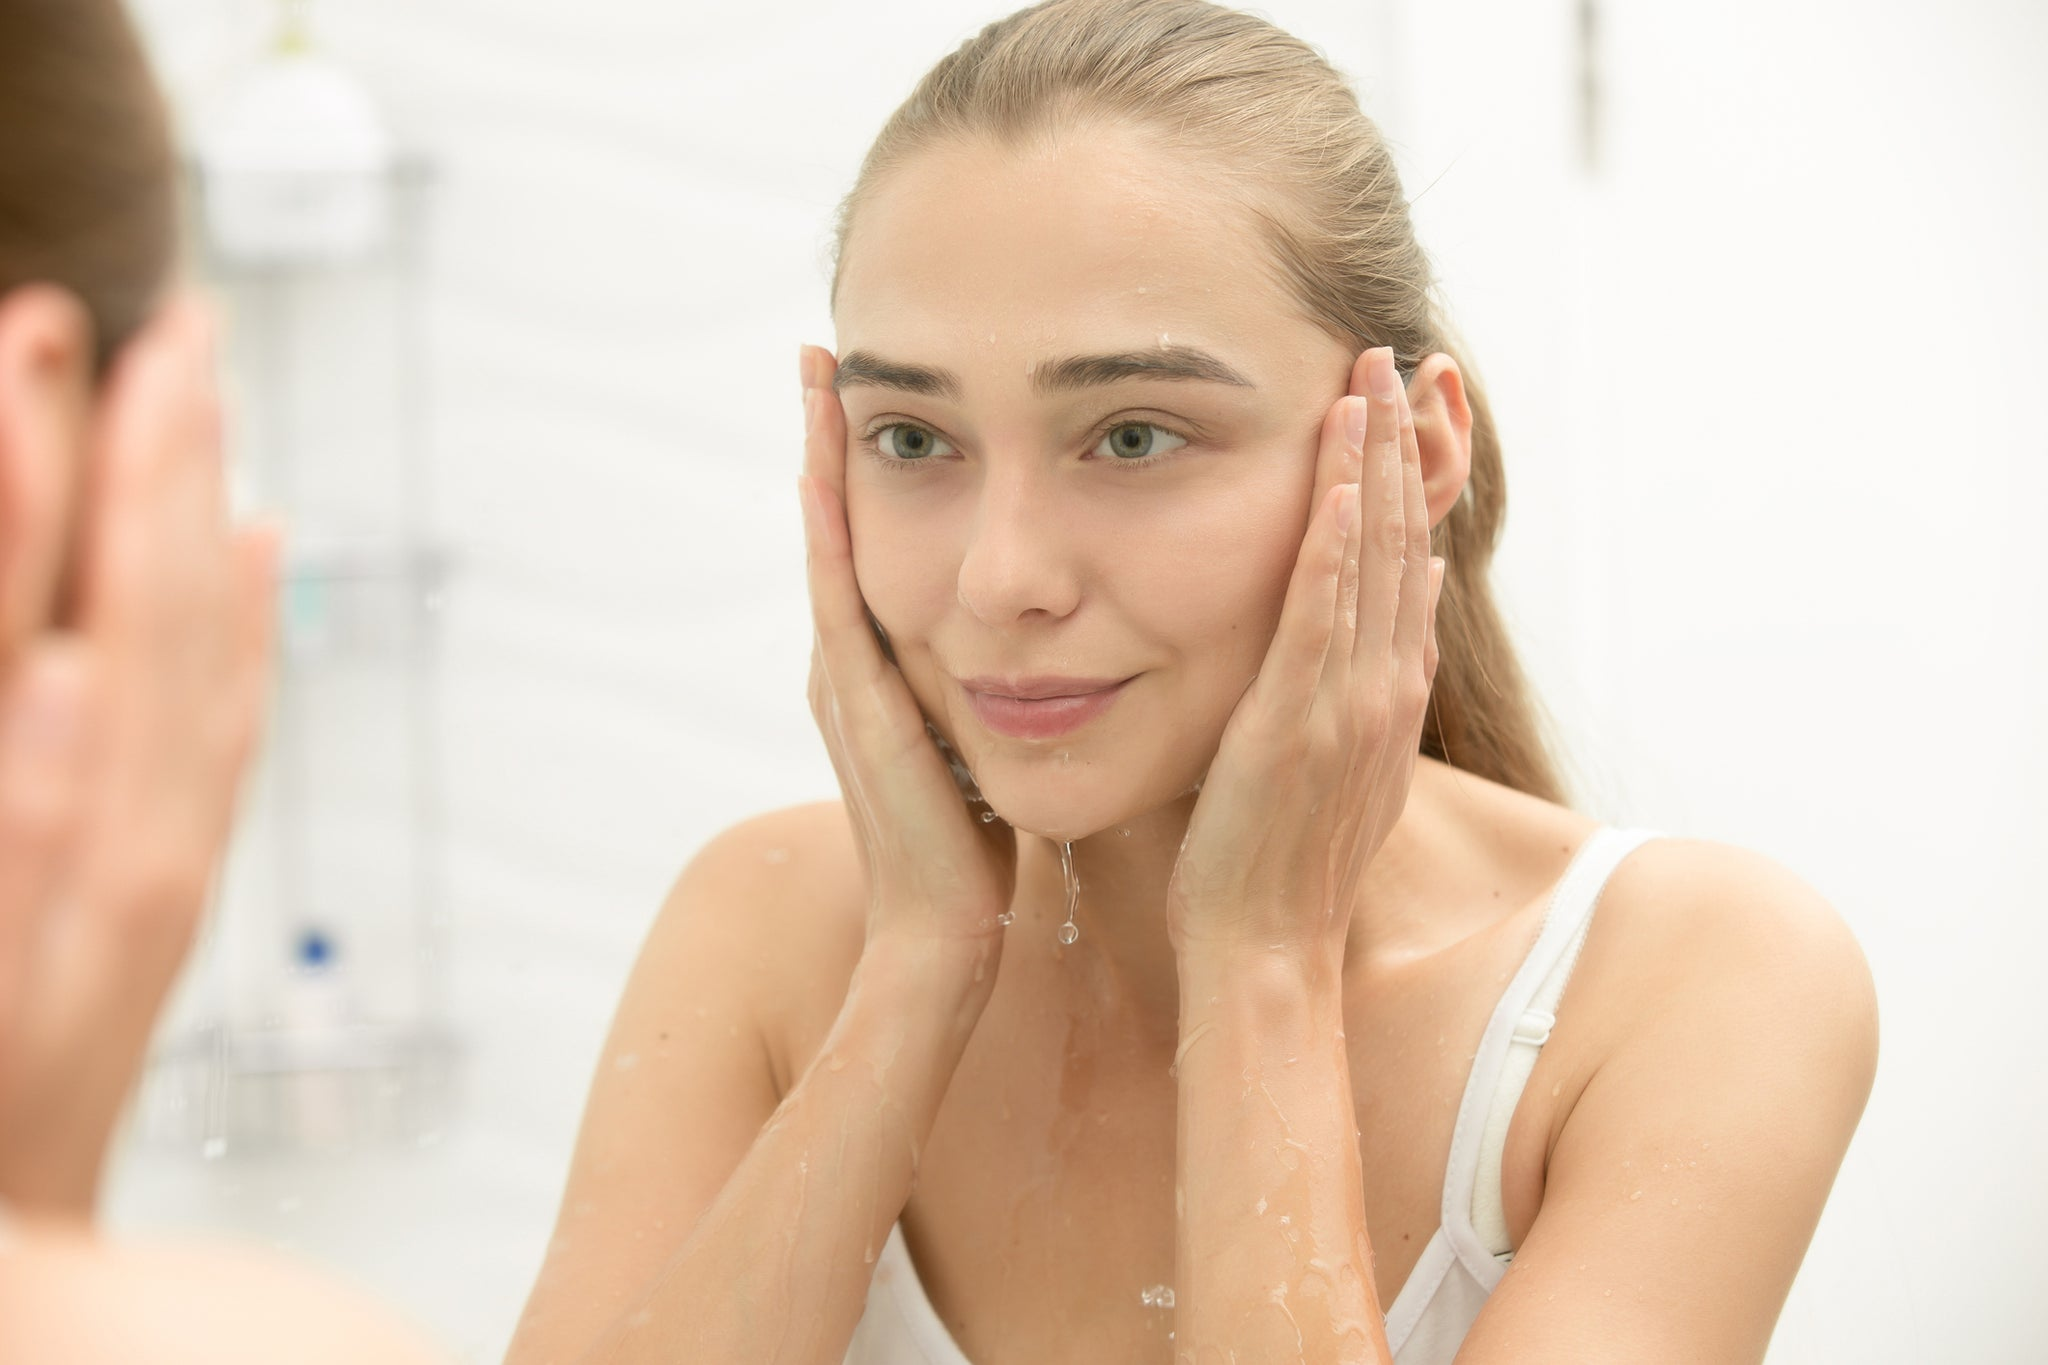 Does your cleanser make your skin feel tight?